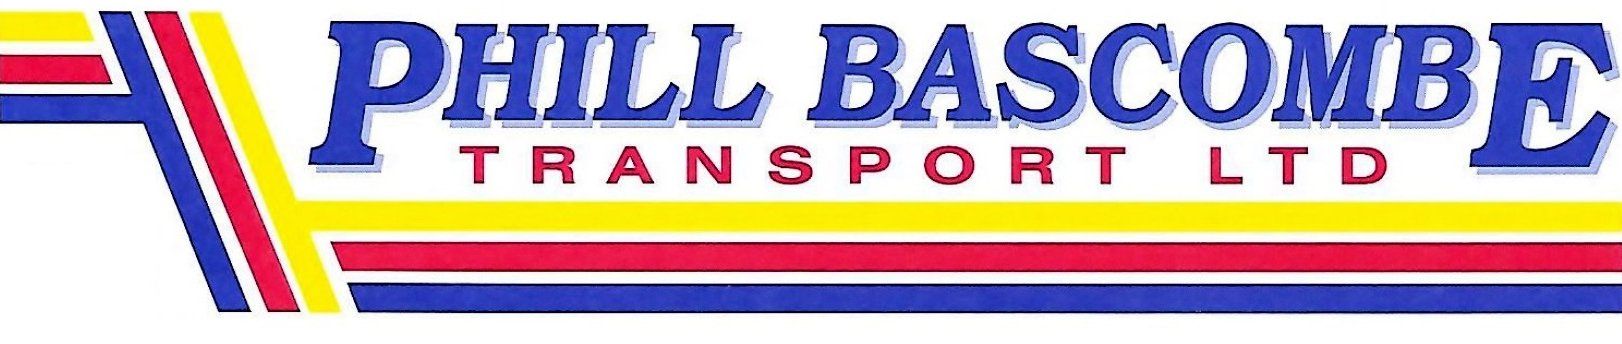 Phill Bascombe Transport Ltd logo